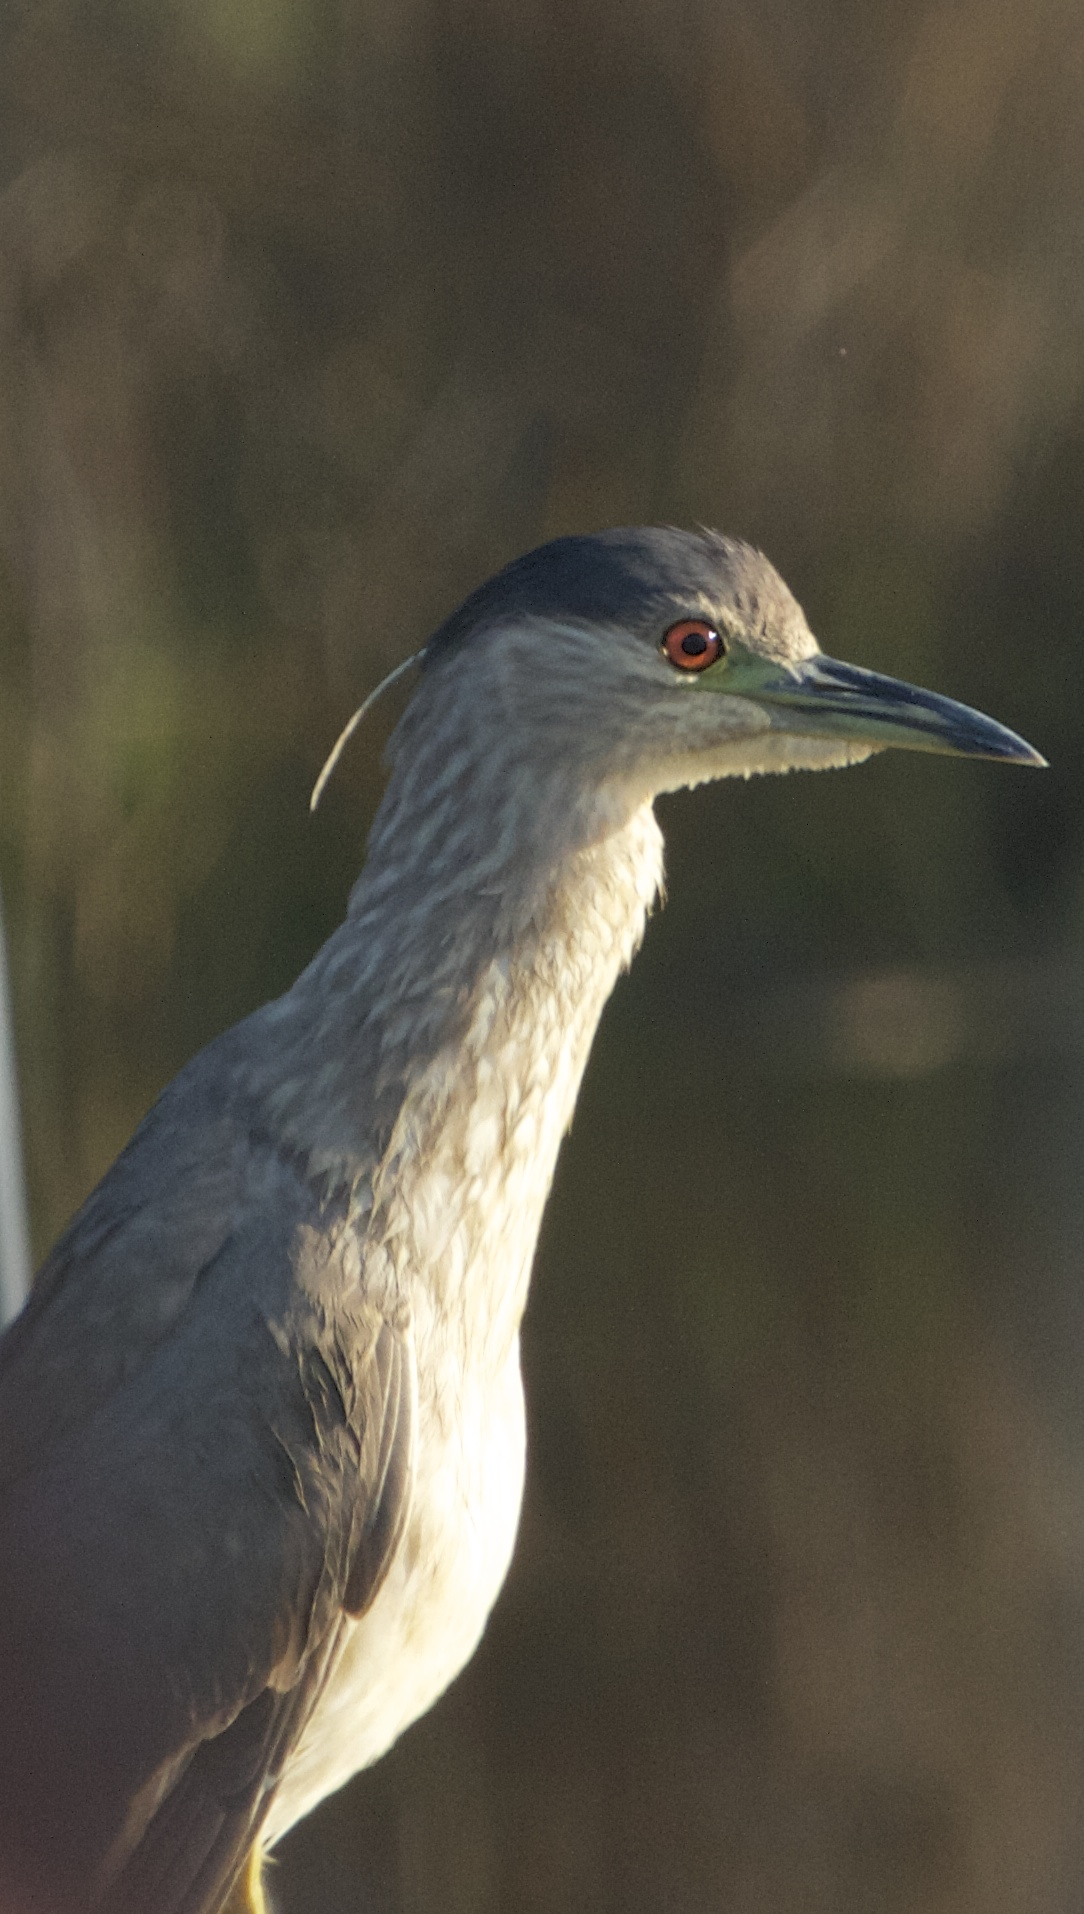 Immature Black-Crowned Night-Heron still showing streaks of brown on the neck.